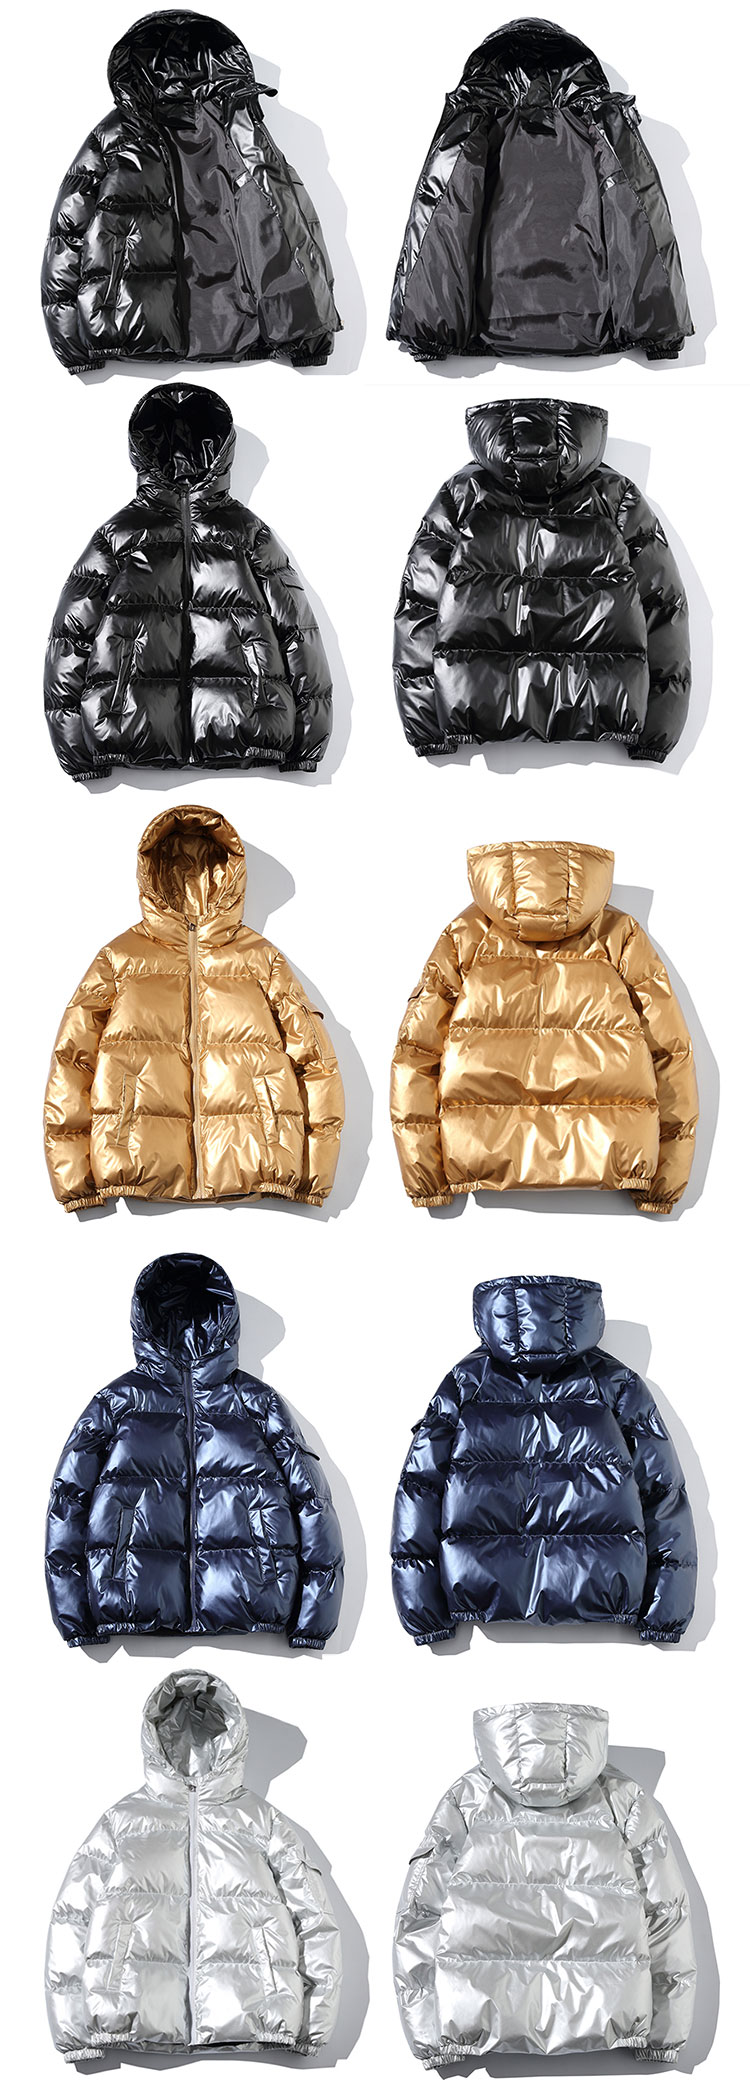 H55513aa6b3f84cfaa0bd87a0d9edba59f - Winter Men Jacket Thick Warm Parka Jackets Silver Bright Glossy Bread Coat Fashion Young Loose Hooded Cotton Jacket Outwear Male